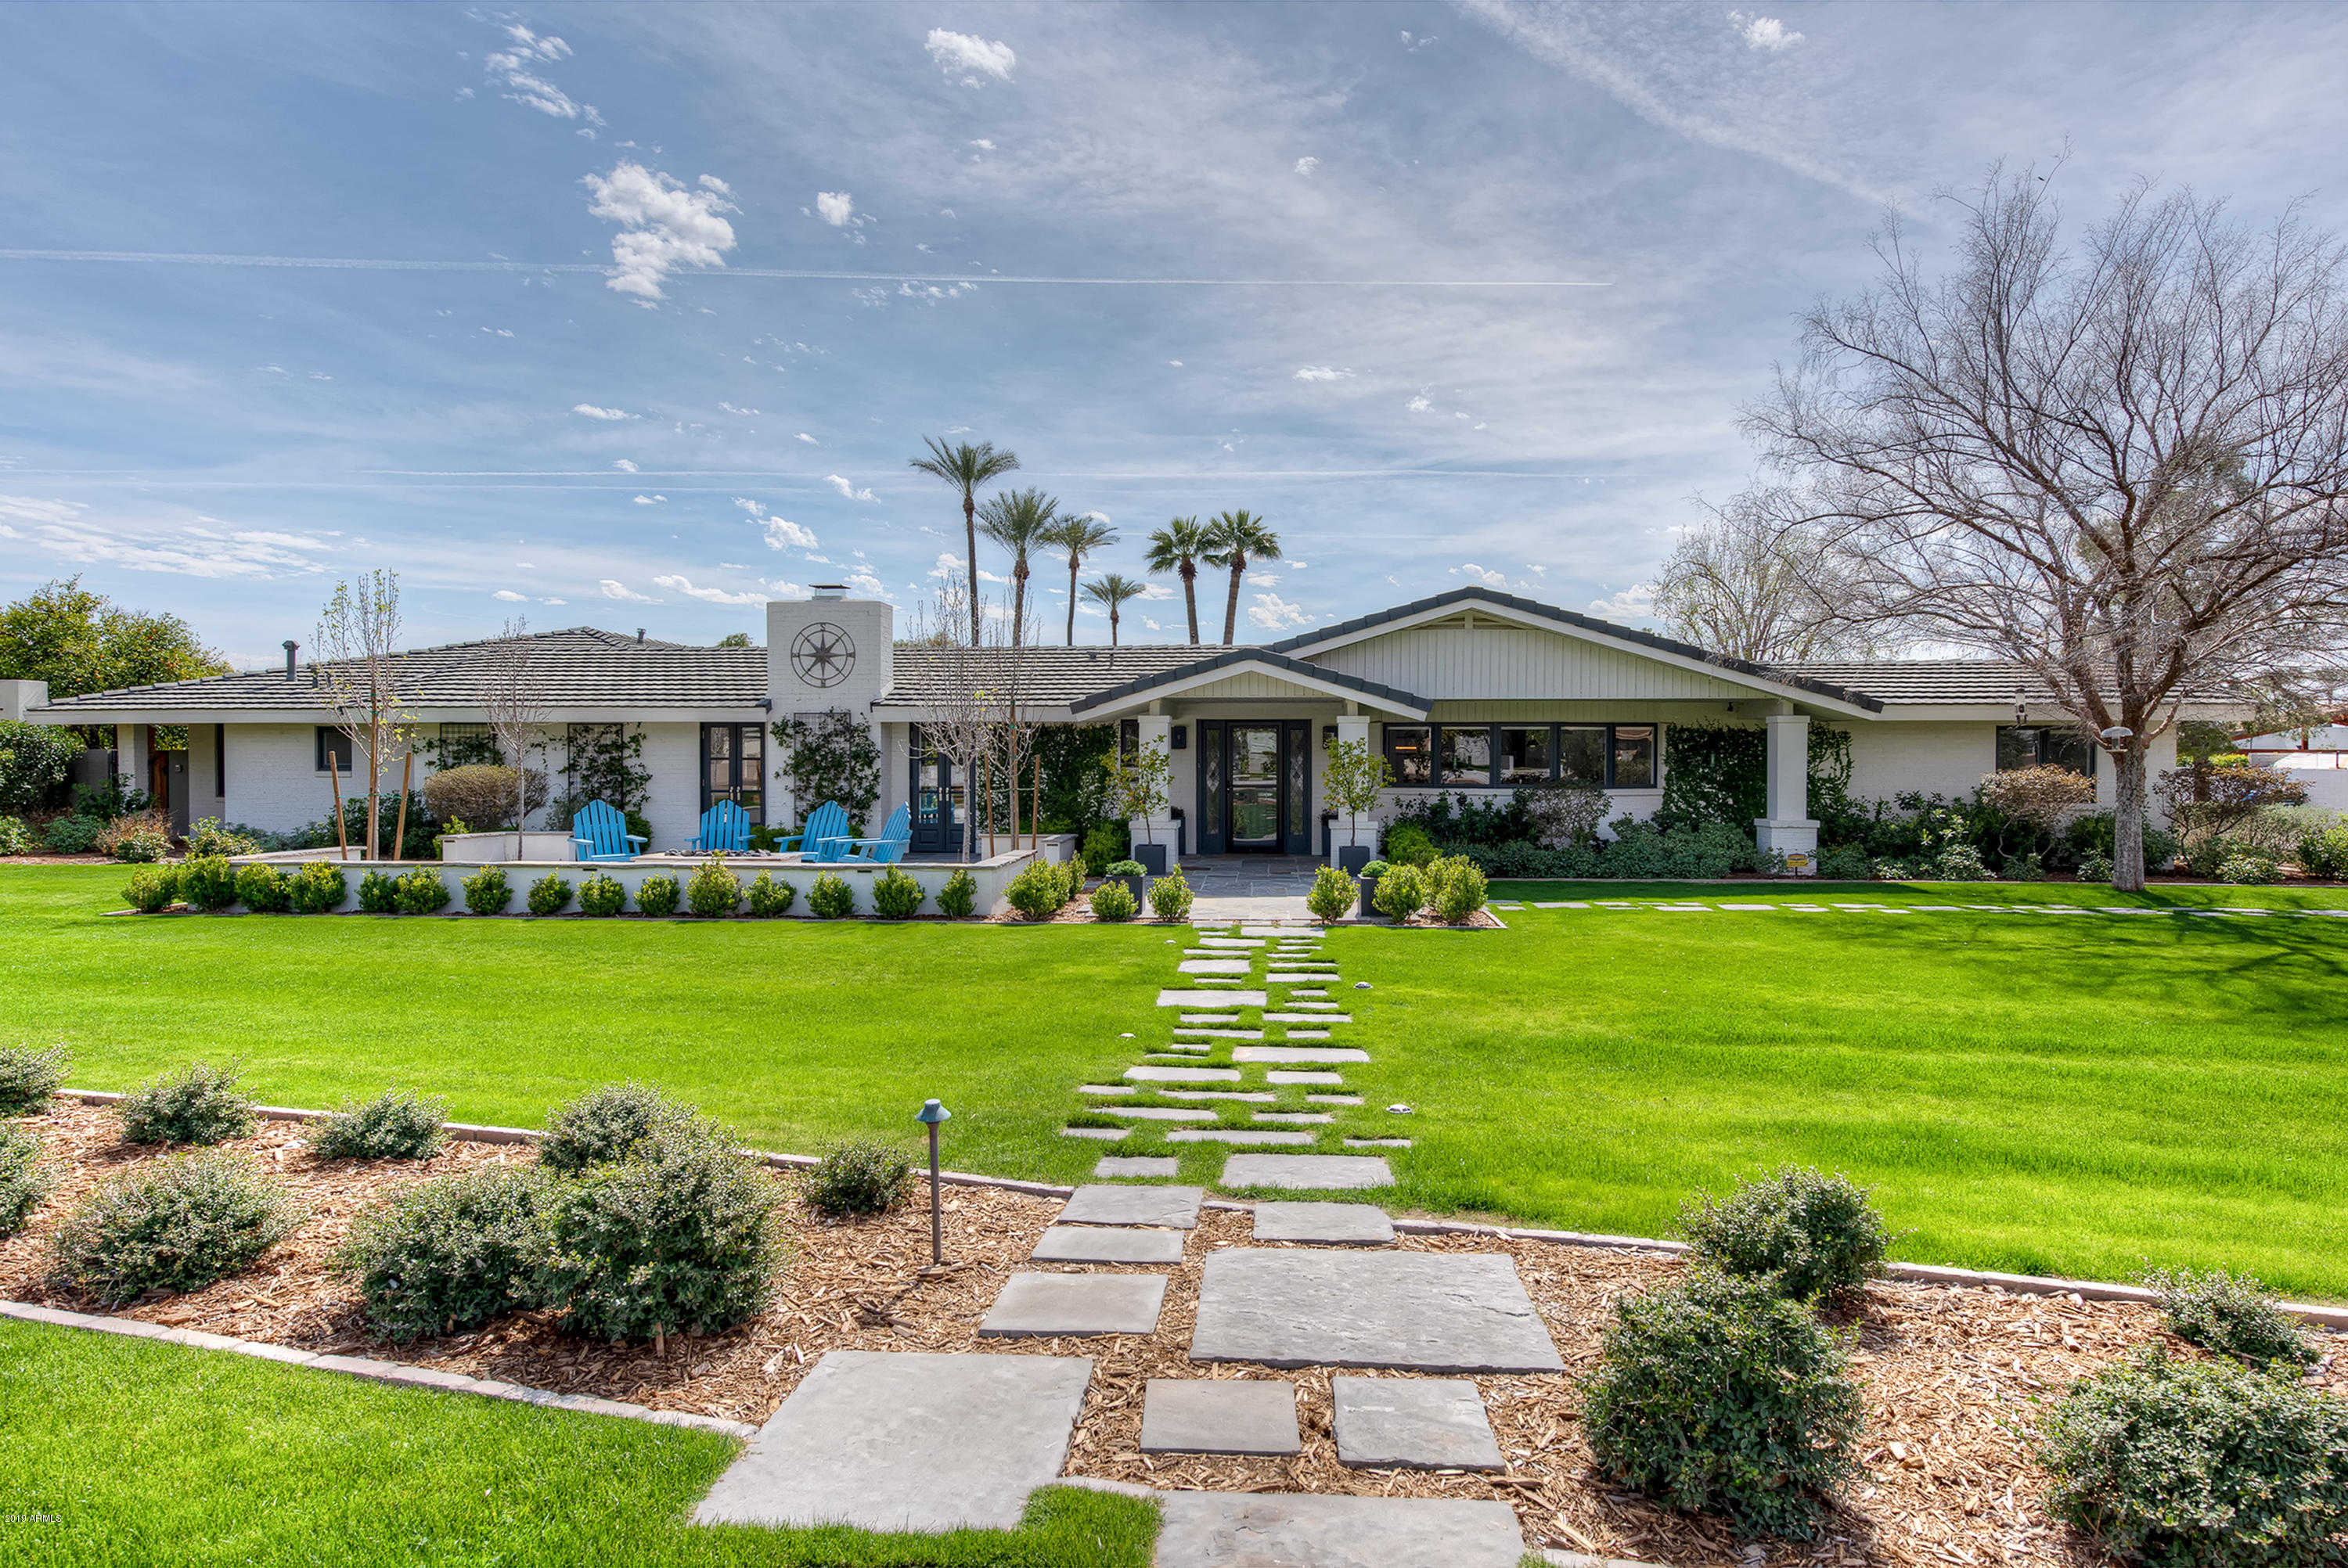 $2,695,000 - 5Br/5Ba - Home for Sale in Continental Groves Of Arcadia, Phoenix